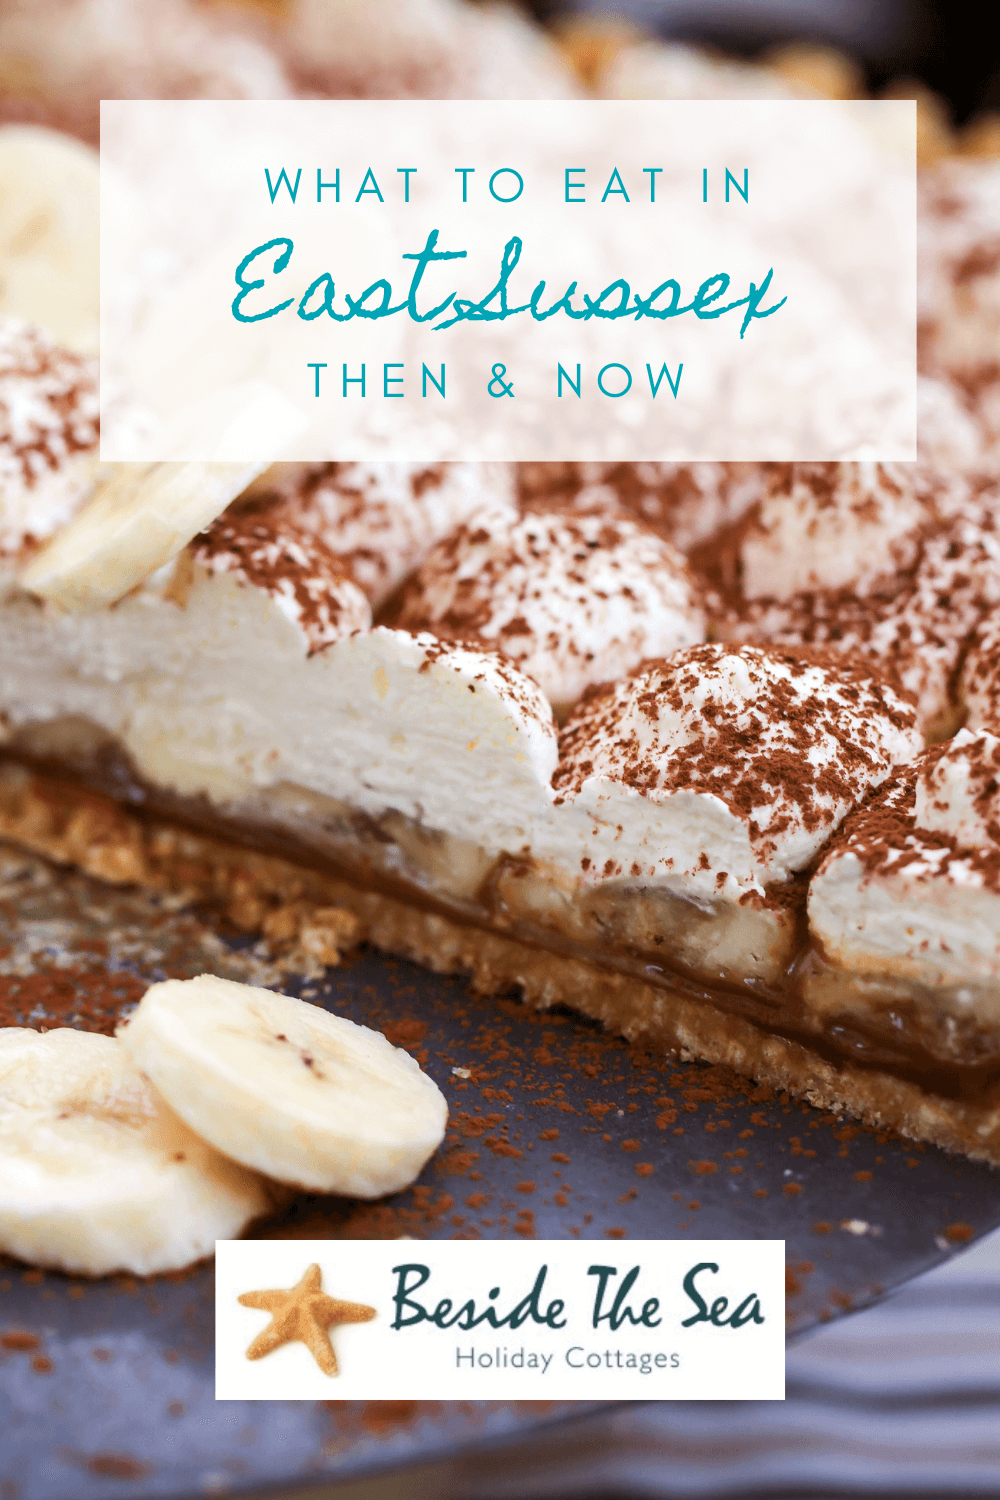 Banoffee Pie is a modern Sussex food tradition but there are many dating back centuries that you can still try when visit East Sussex